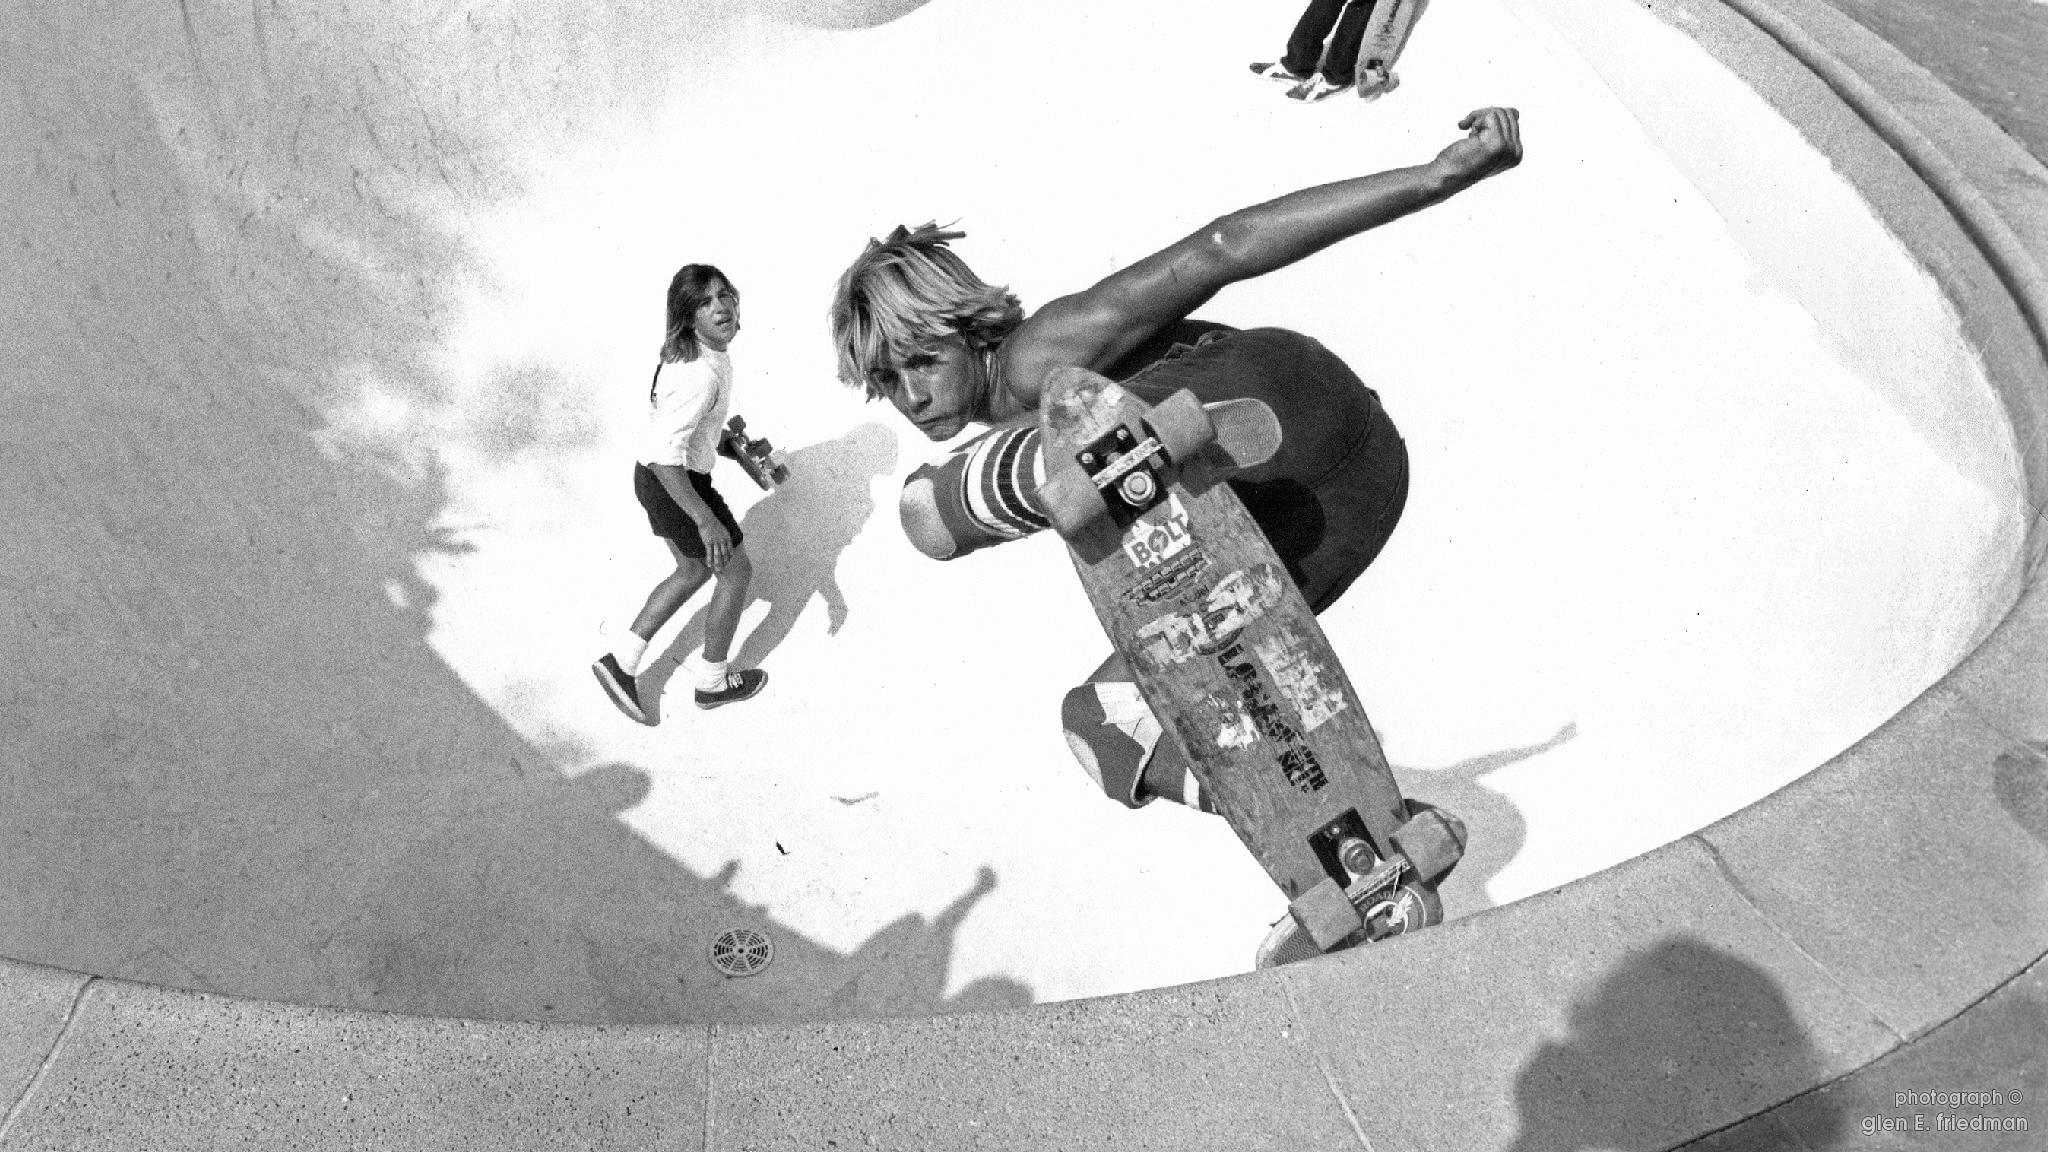 Adams skates a backyard pool in West Los Angeles in 1976. Fellow Zephyr team rider Paul Constantineau looks on from the bottom of the pool.